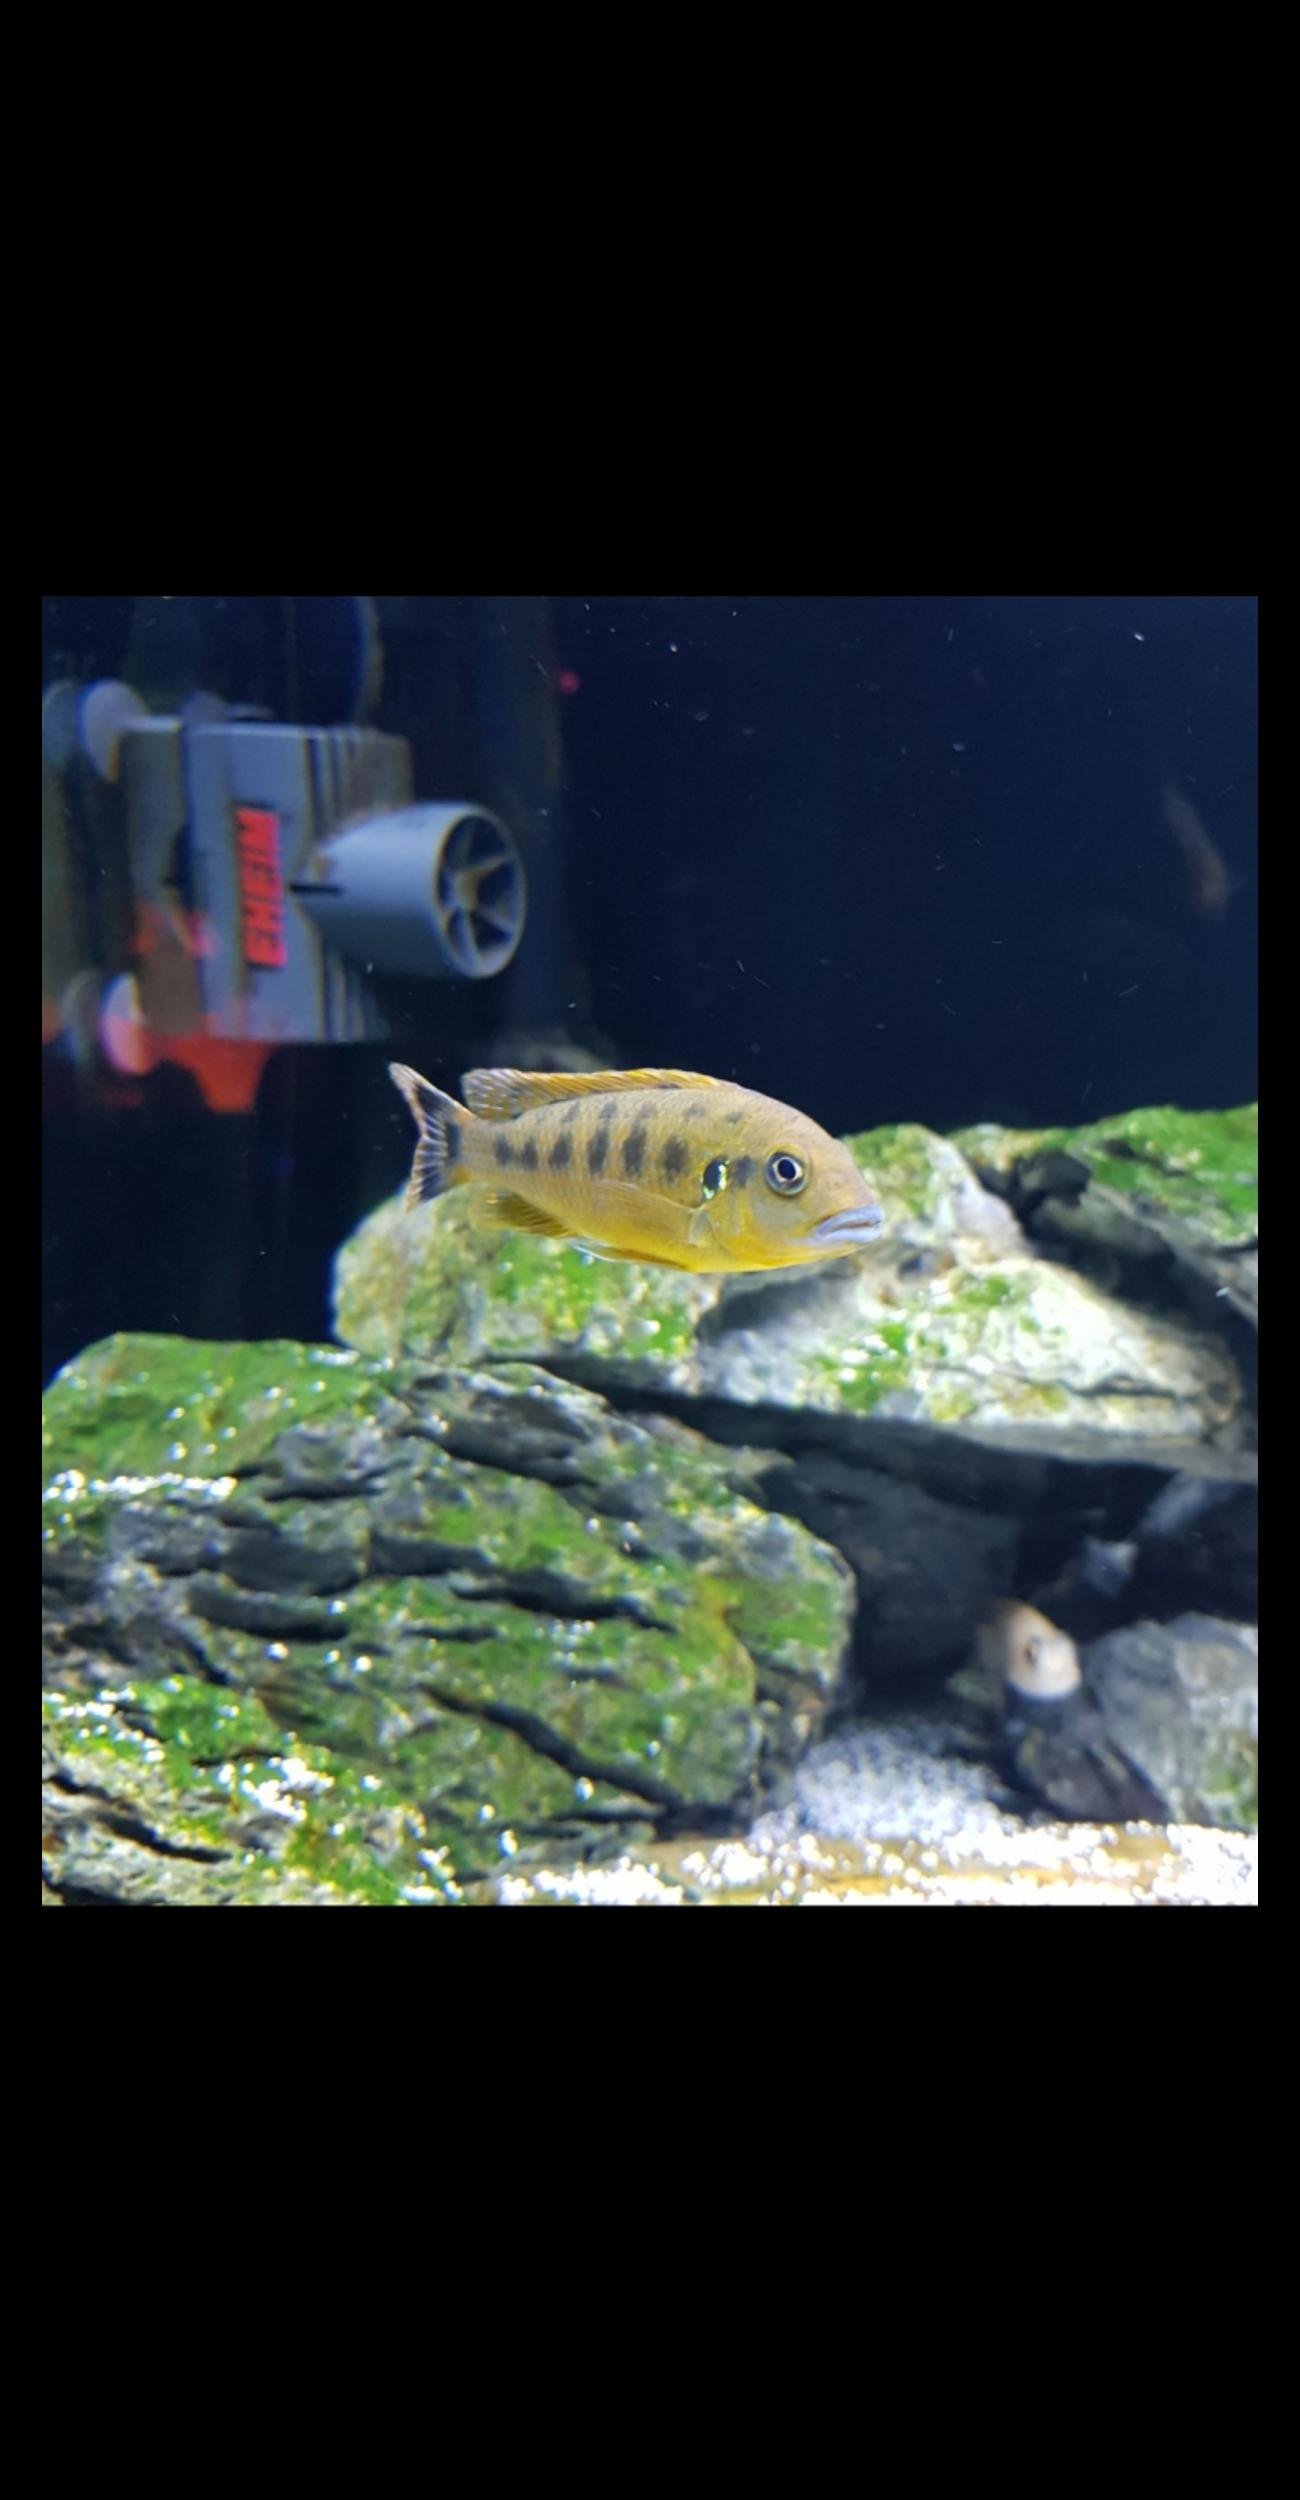 Malawi cichlids blue lips in UB3 London for £50 00 for sale - Shpock